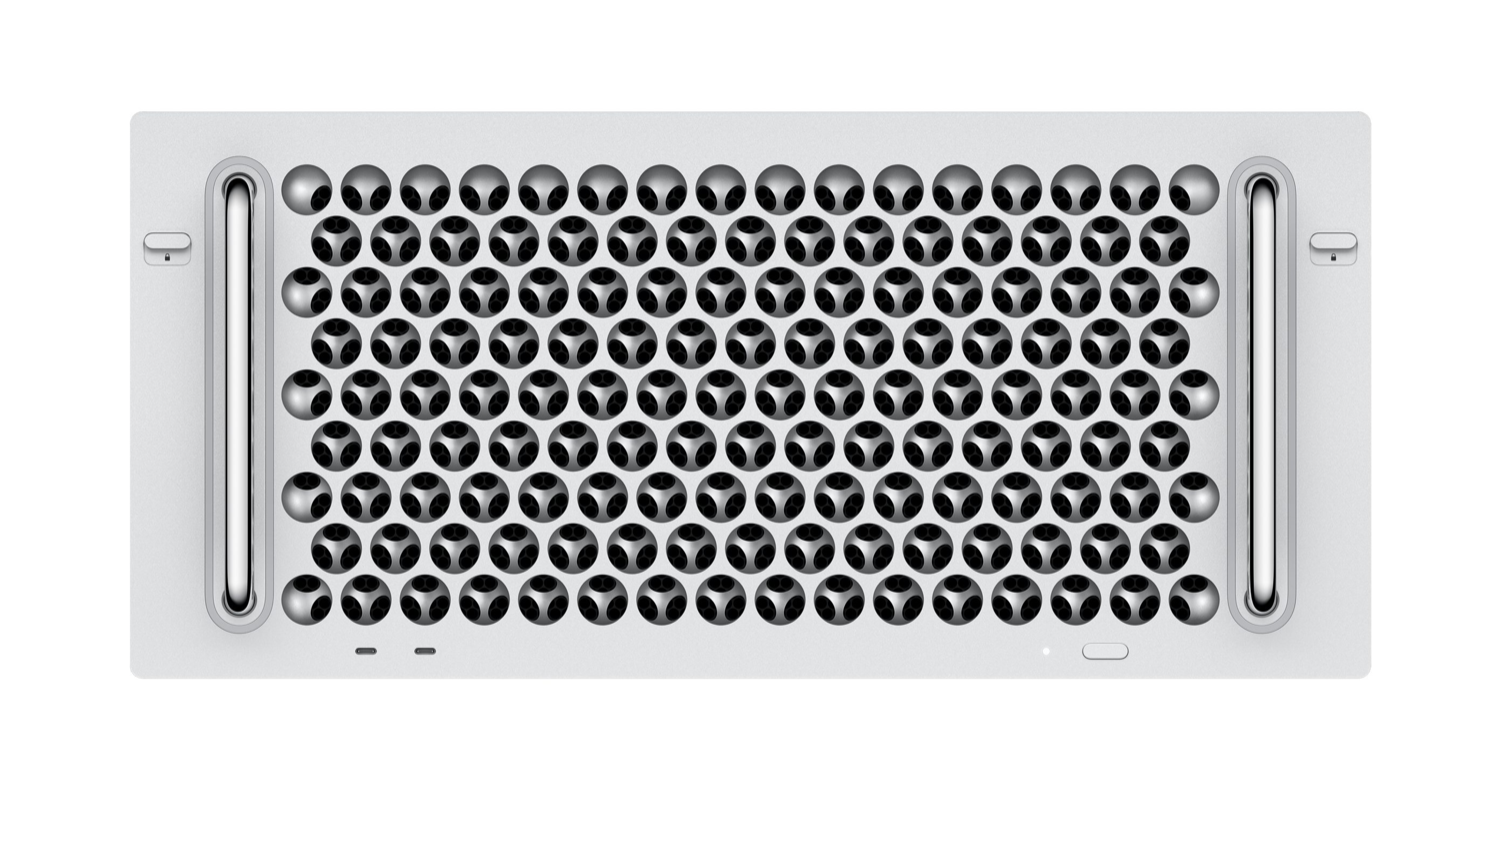 New, Factory Sealed, Mac Pro - Rack Mount 3.2GHz 16-Core Intel Xenon 48GB/2TB SSD/RP W5700X (16GB VRAM) at Small Dog Electronics